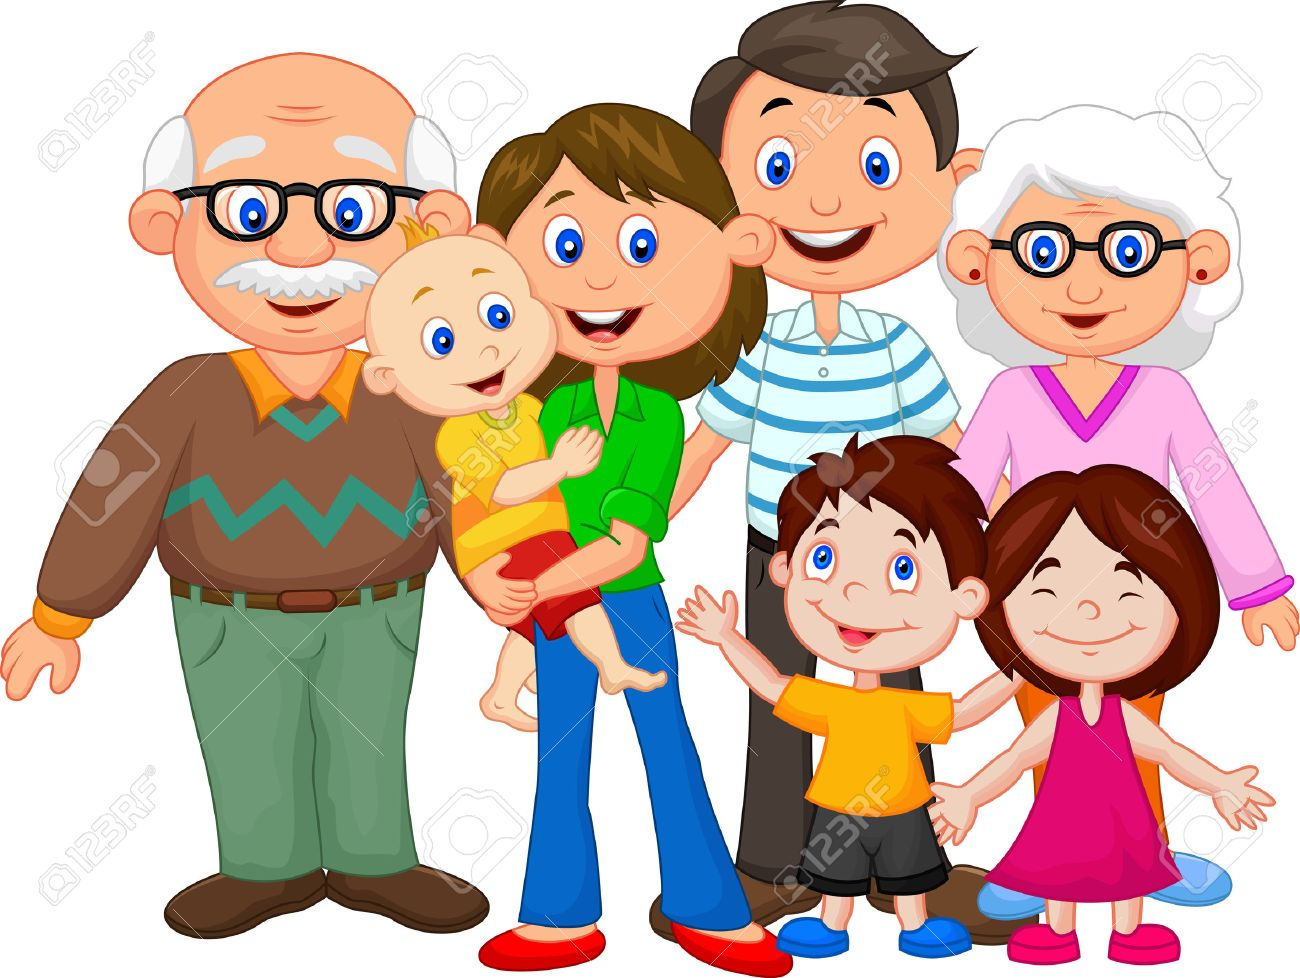 family cartoon stock photos royalty free family cartoon images rh 123rf com cartoon family pictures of 5 cartoon family pictures of 6